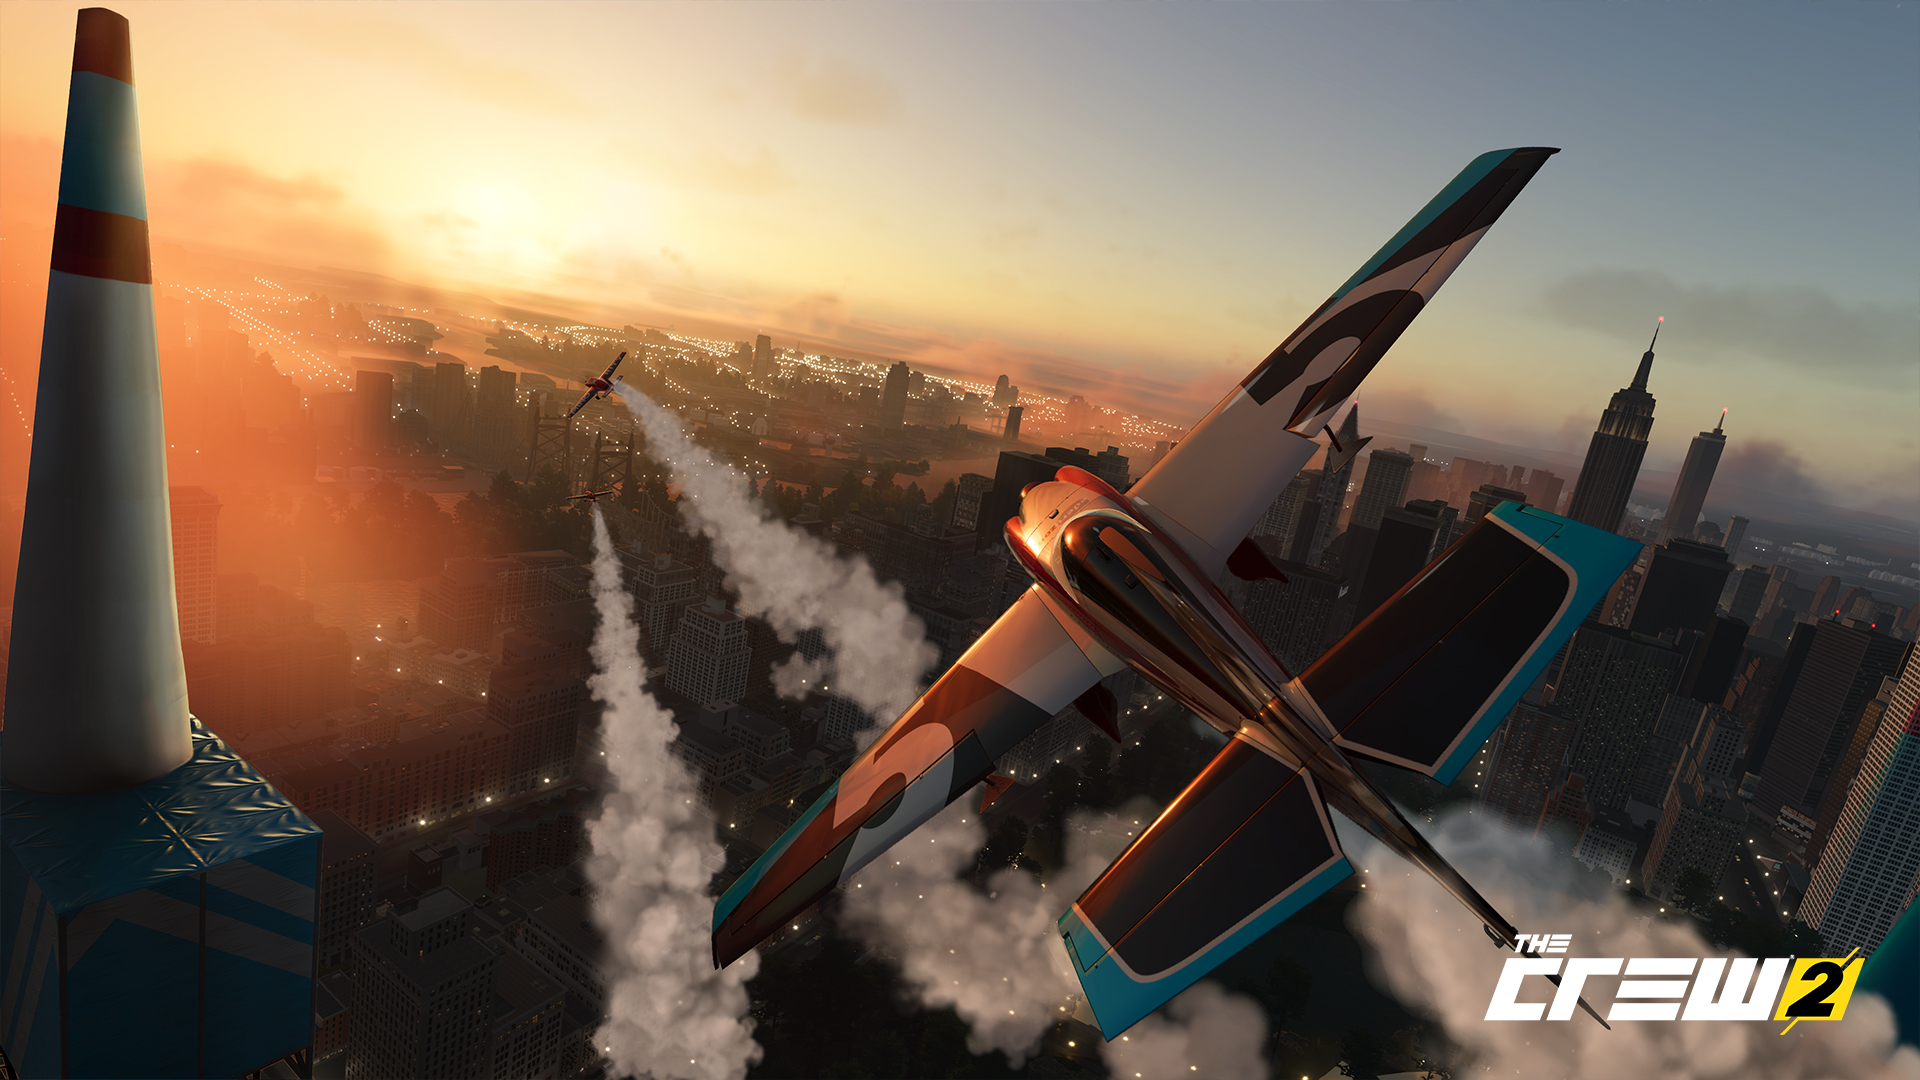 The Crew 2 delayed until 2018 fiscal year